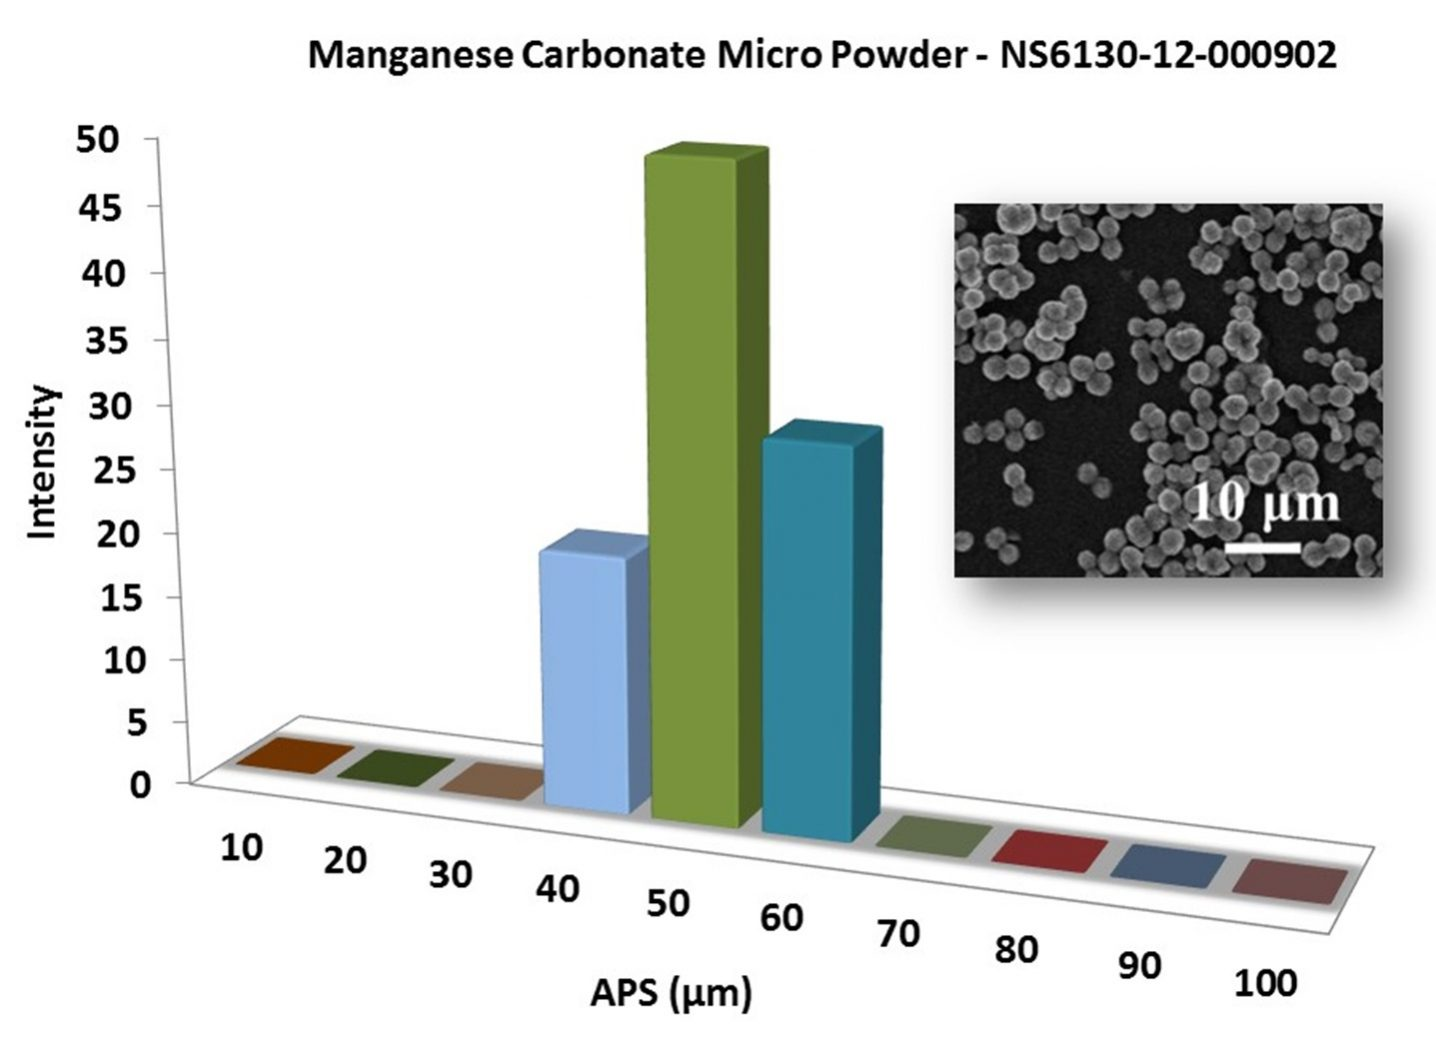 Particles Size Analysis – MnCO3 Powder